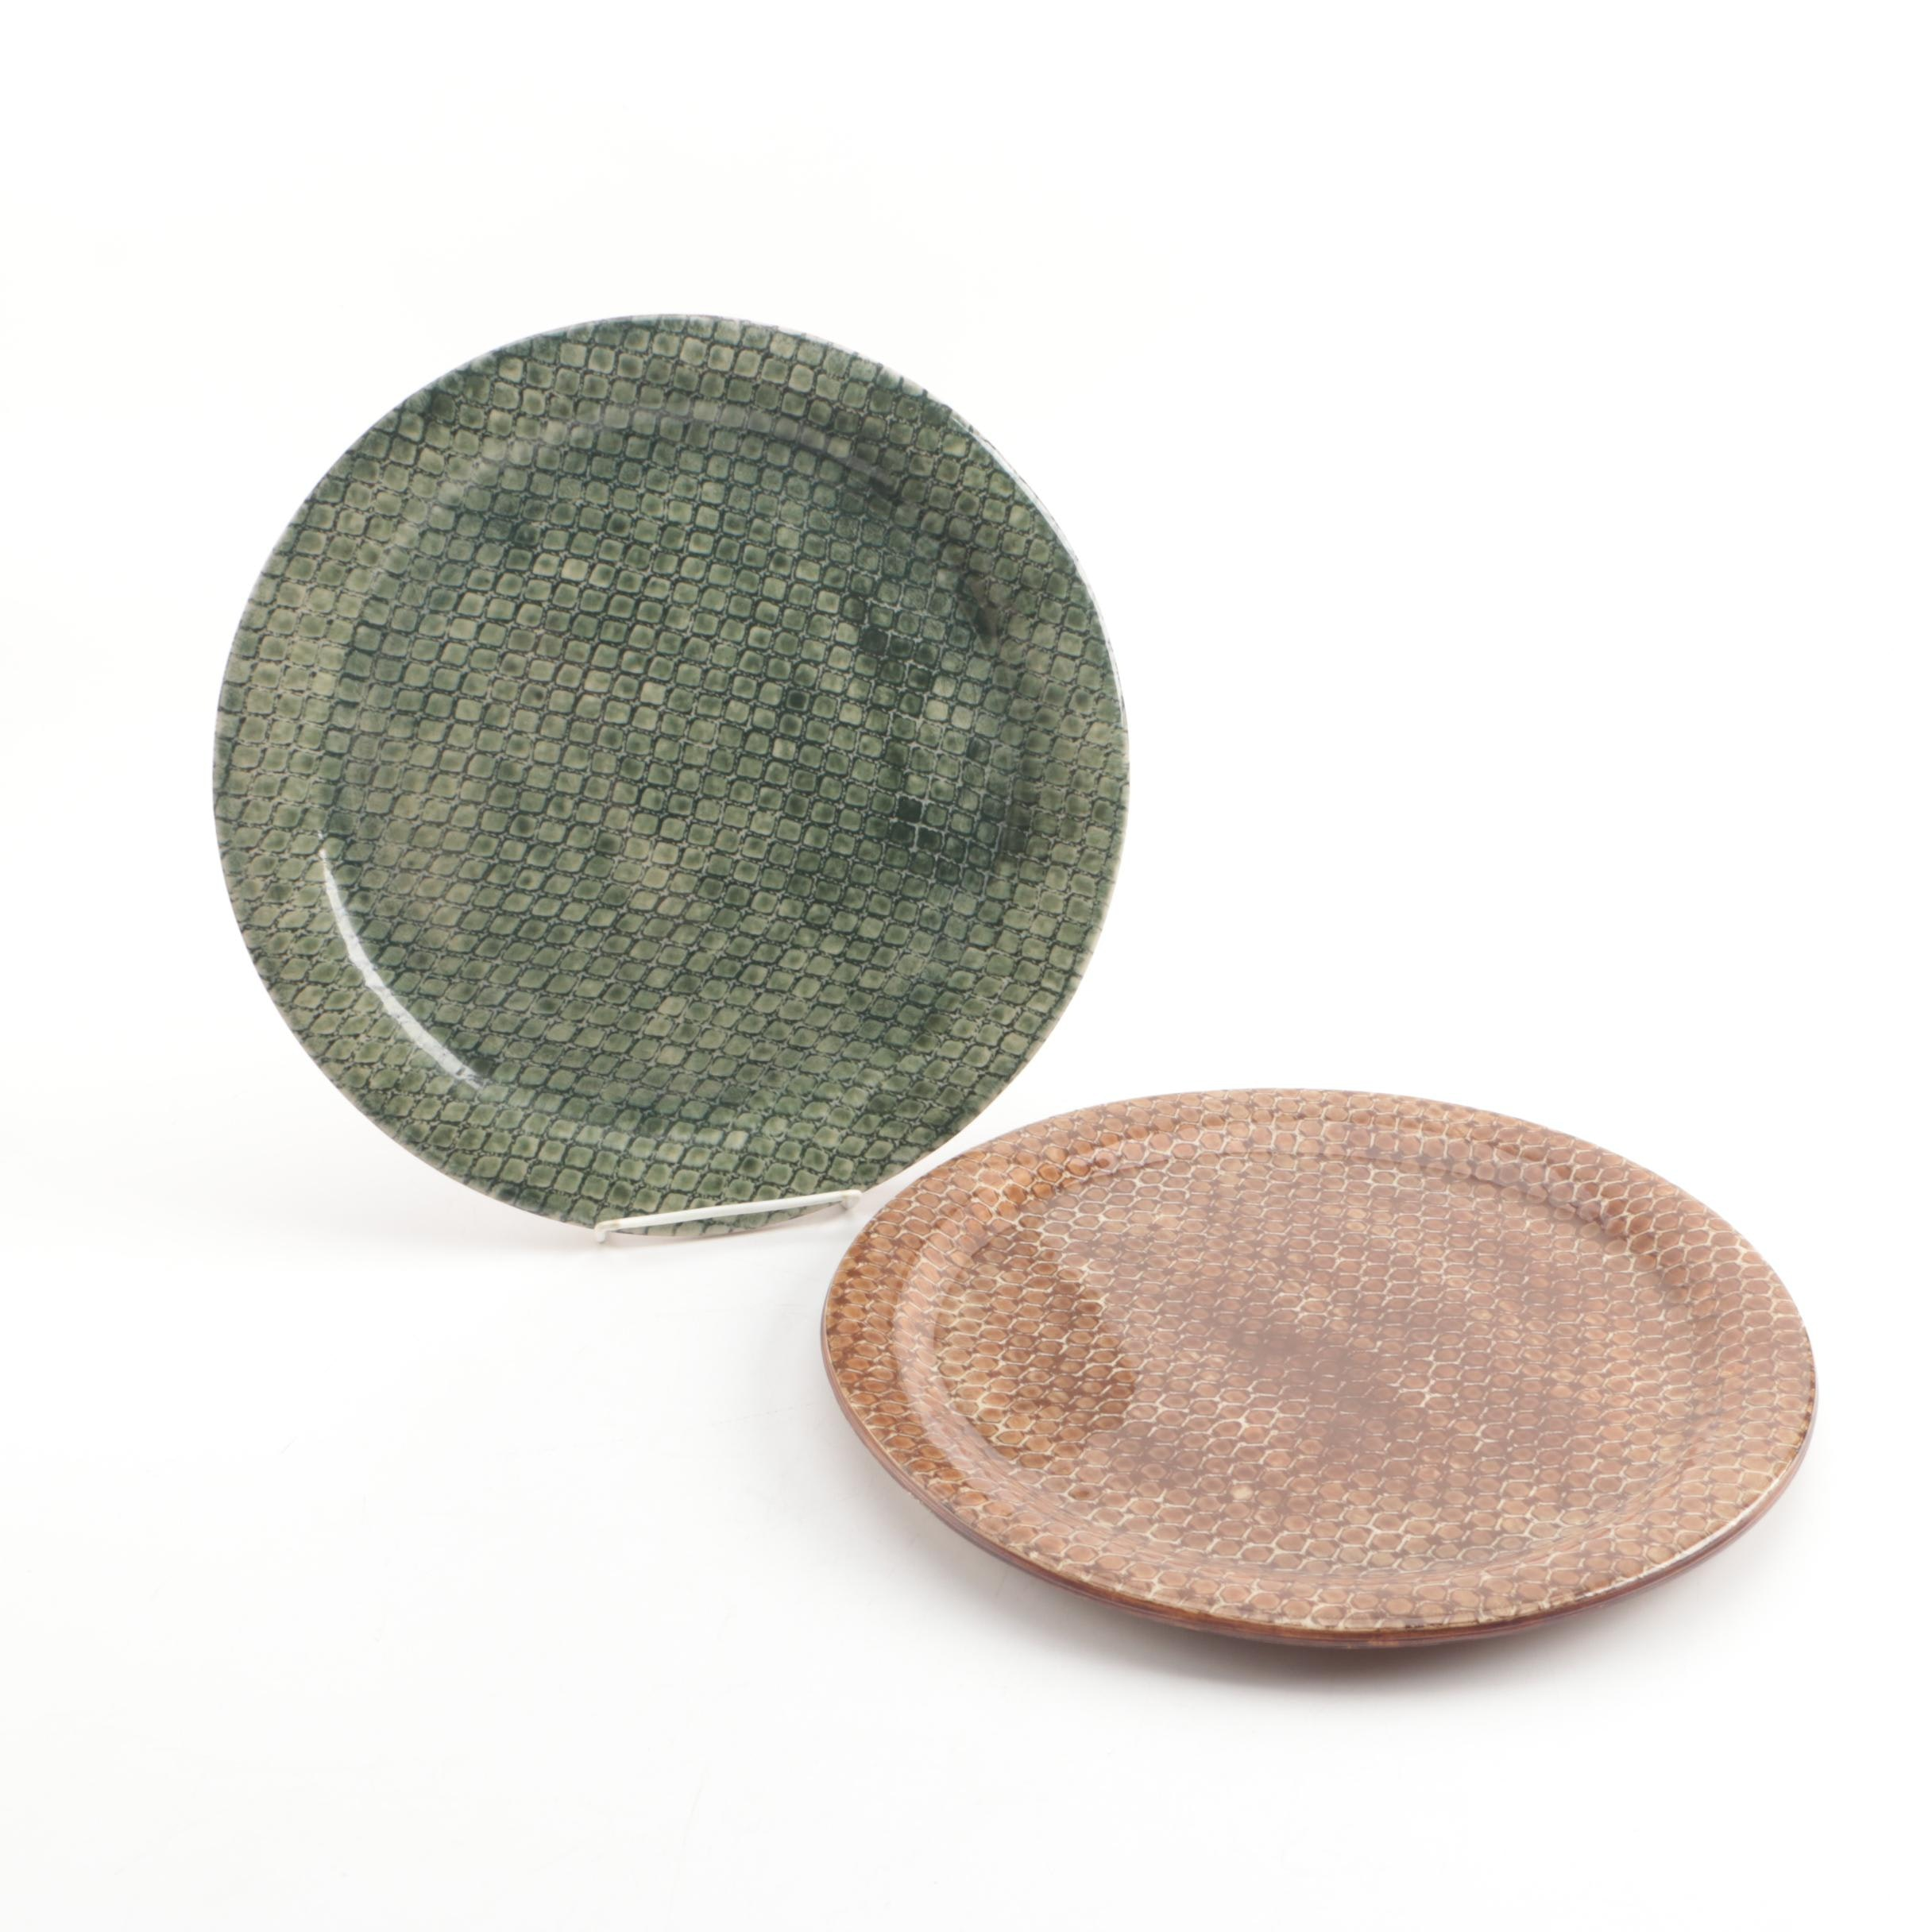 Ellen Evans Wheel Thrown Honeycomb Stoneware Plates in Green and Brown